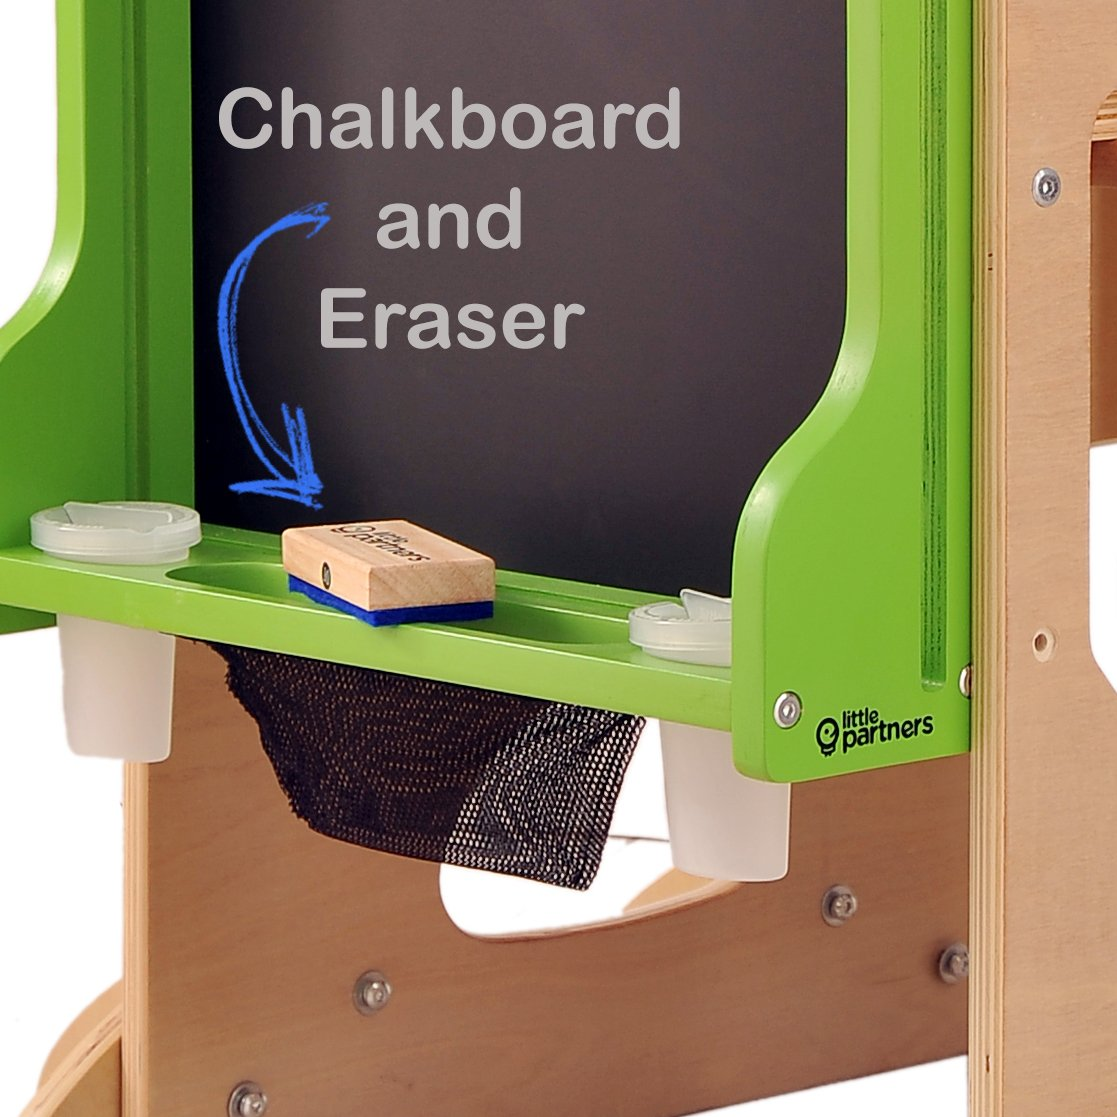 Improved Little Partners Learn N/' Share Easel - Espresso Art and Education Add-on Attachment for The Learning Tower